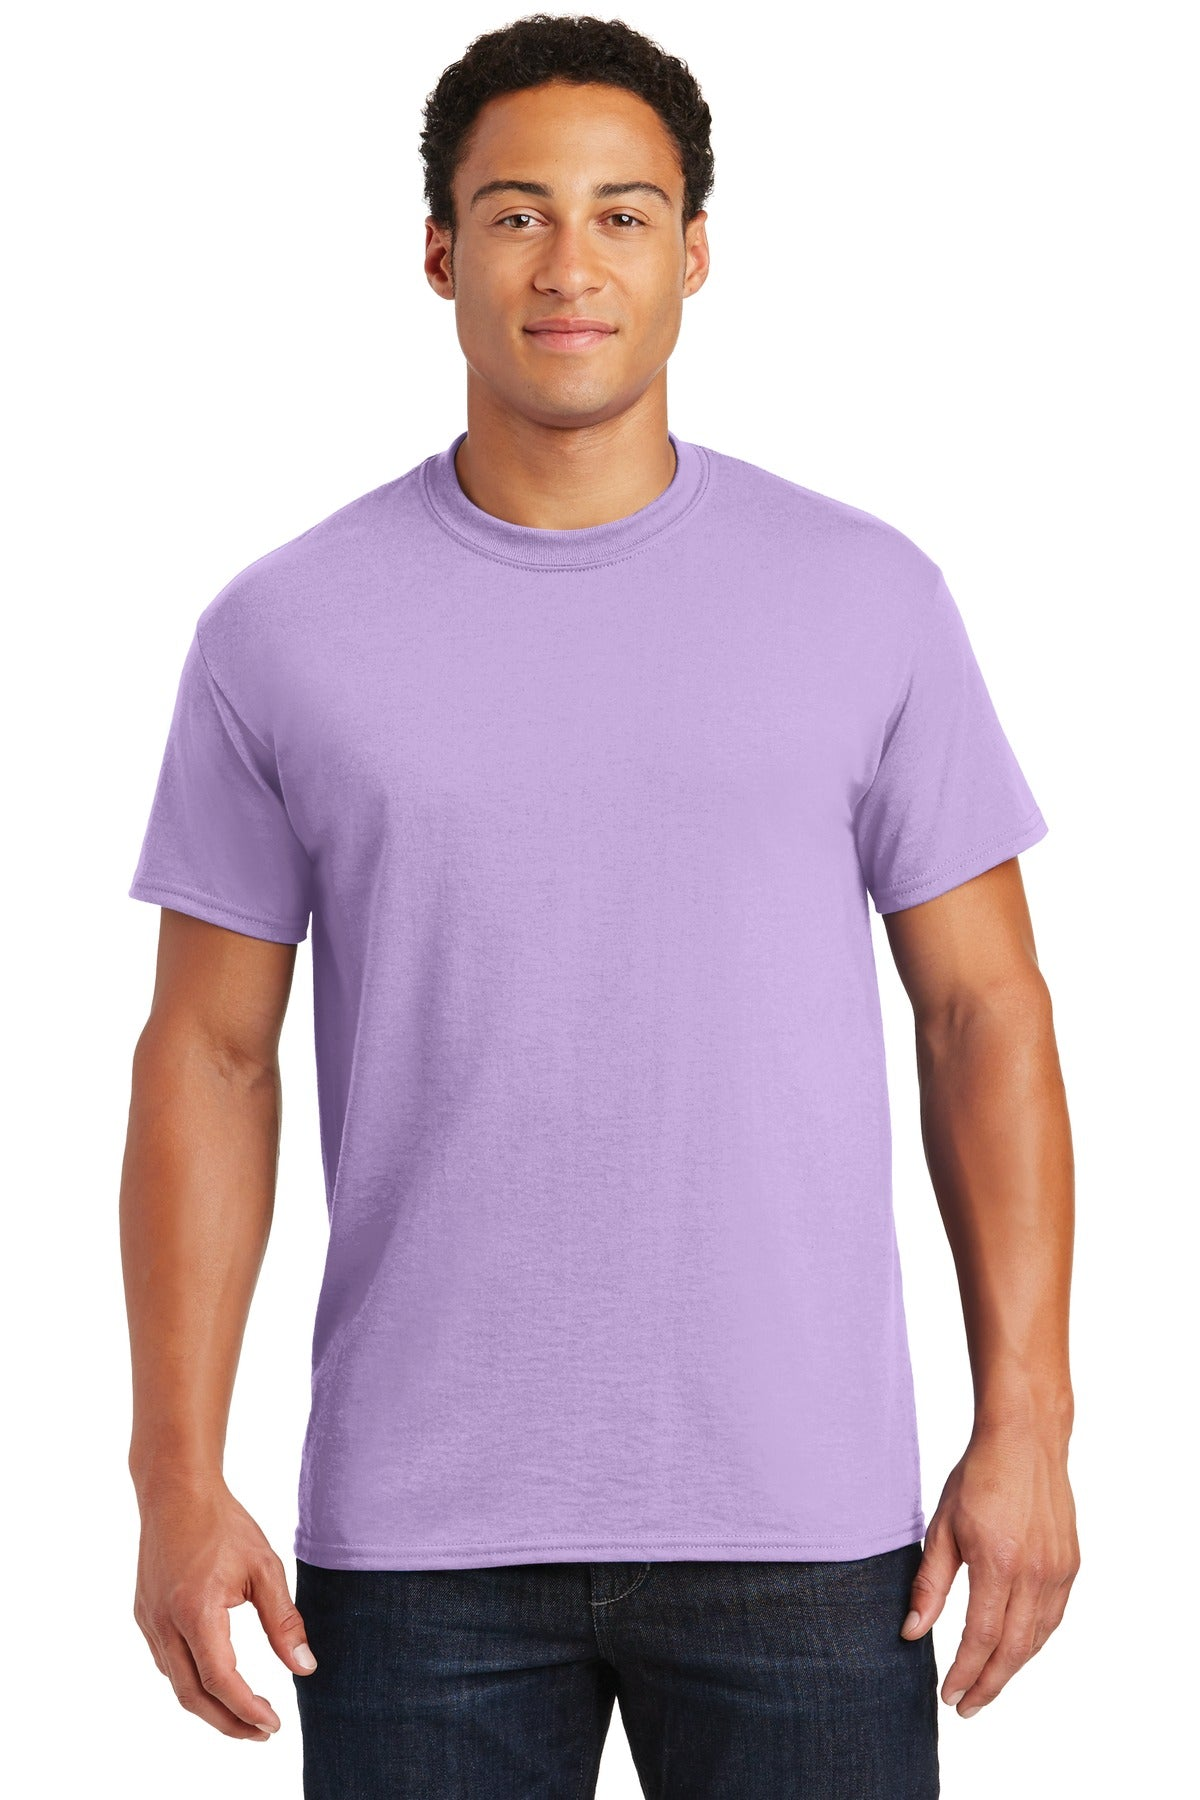 Orchid Gildan DryBlend 50 Cotton/50 Poly T-Shirt.